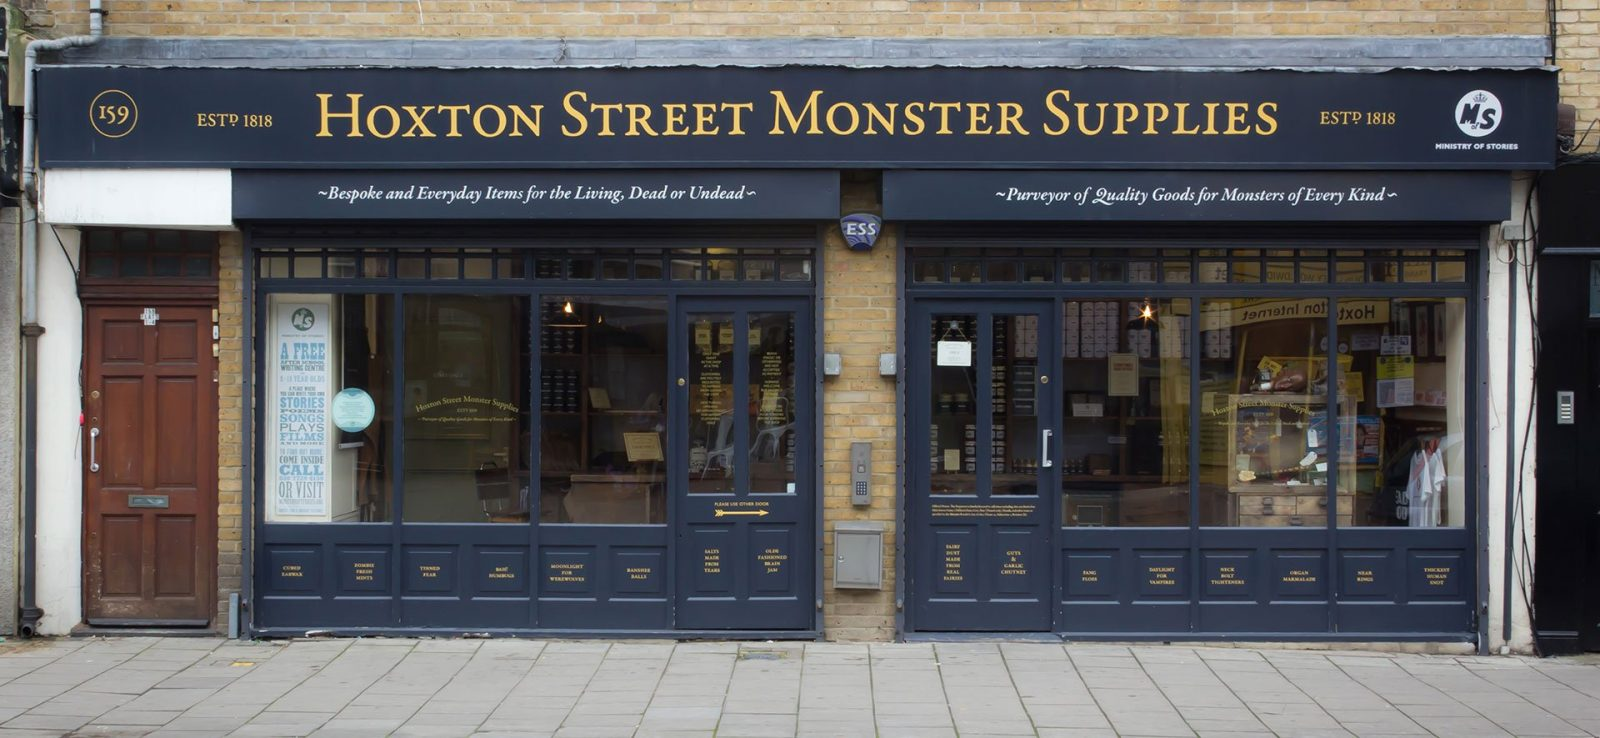 Hoxton Street Monster Supplies - Les lieux insolites à Londres